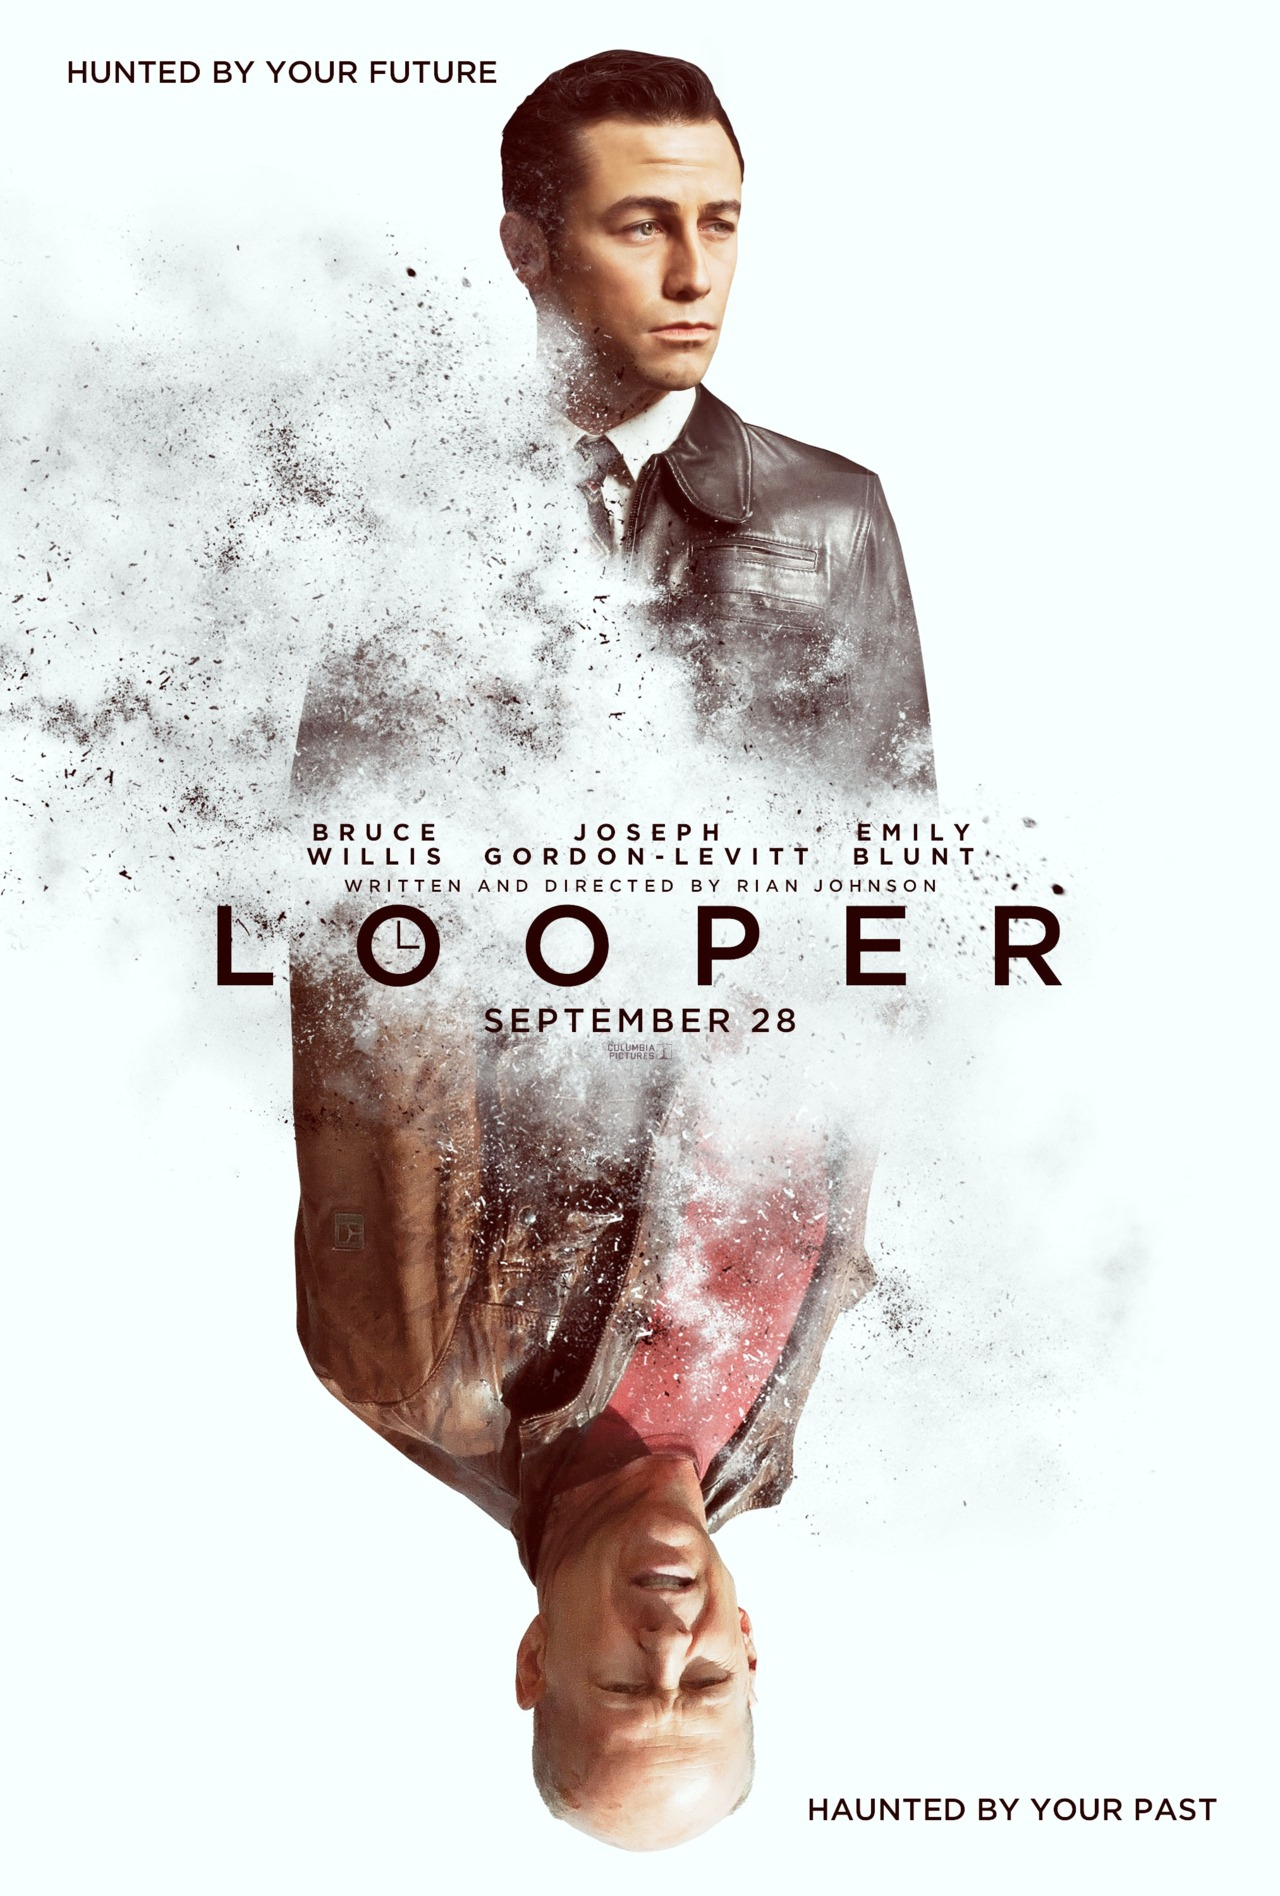 Congrats Joe    hitrecordjoe :      loopermovie :     Teaser poster ( via our friends at /Film )     Here you can really get a good sense of the work done by Kazuhiro Tsuji, the genius alchemist who designed the prosthetic makeup I wear in this movie. What I love about acting is transforming into somebody else, and of course, physically having a different face helps. Much credit also due to Jamie Kelman who applied the makeup every morning for three hours.   I really REALLY think you guys are gonna like this one.   btw,  Rian Johnson , who wrote and directed this movie, (as well as  Brick  and  The Brothers Bloom ) has been running the  LOOPERmovie  tumblr himself. Definitely worth following.